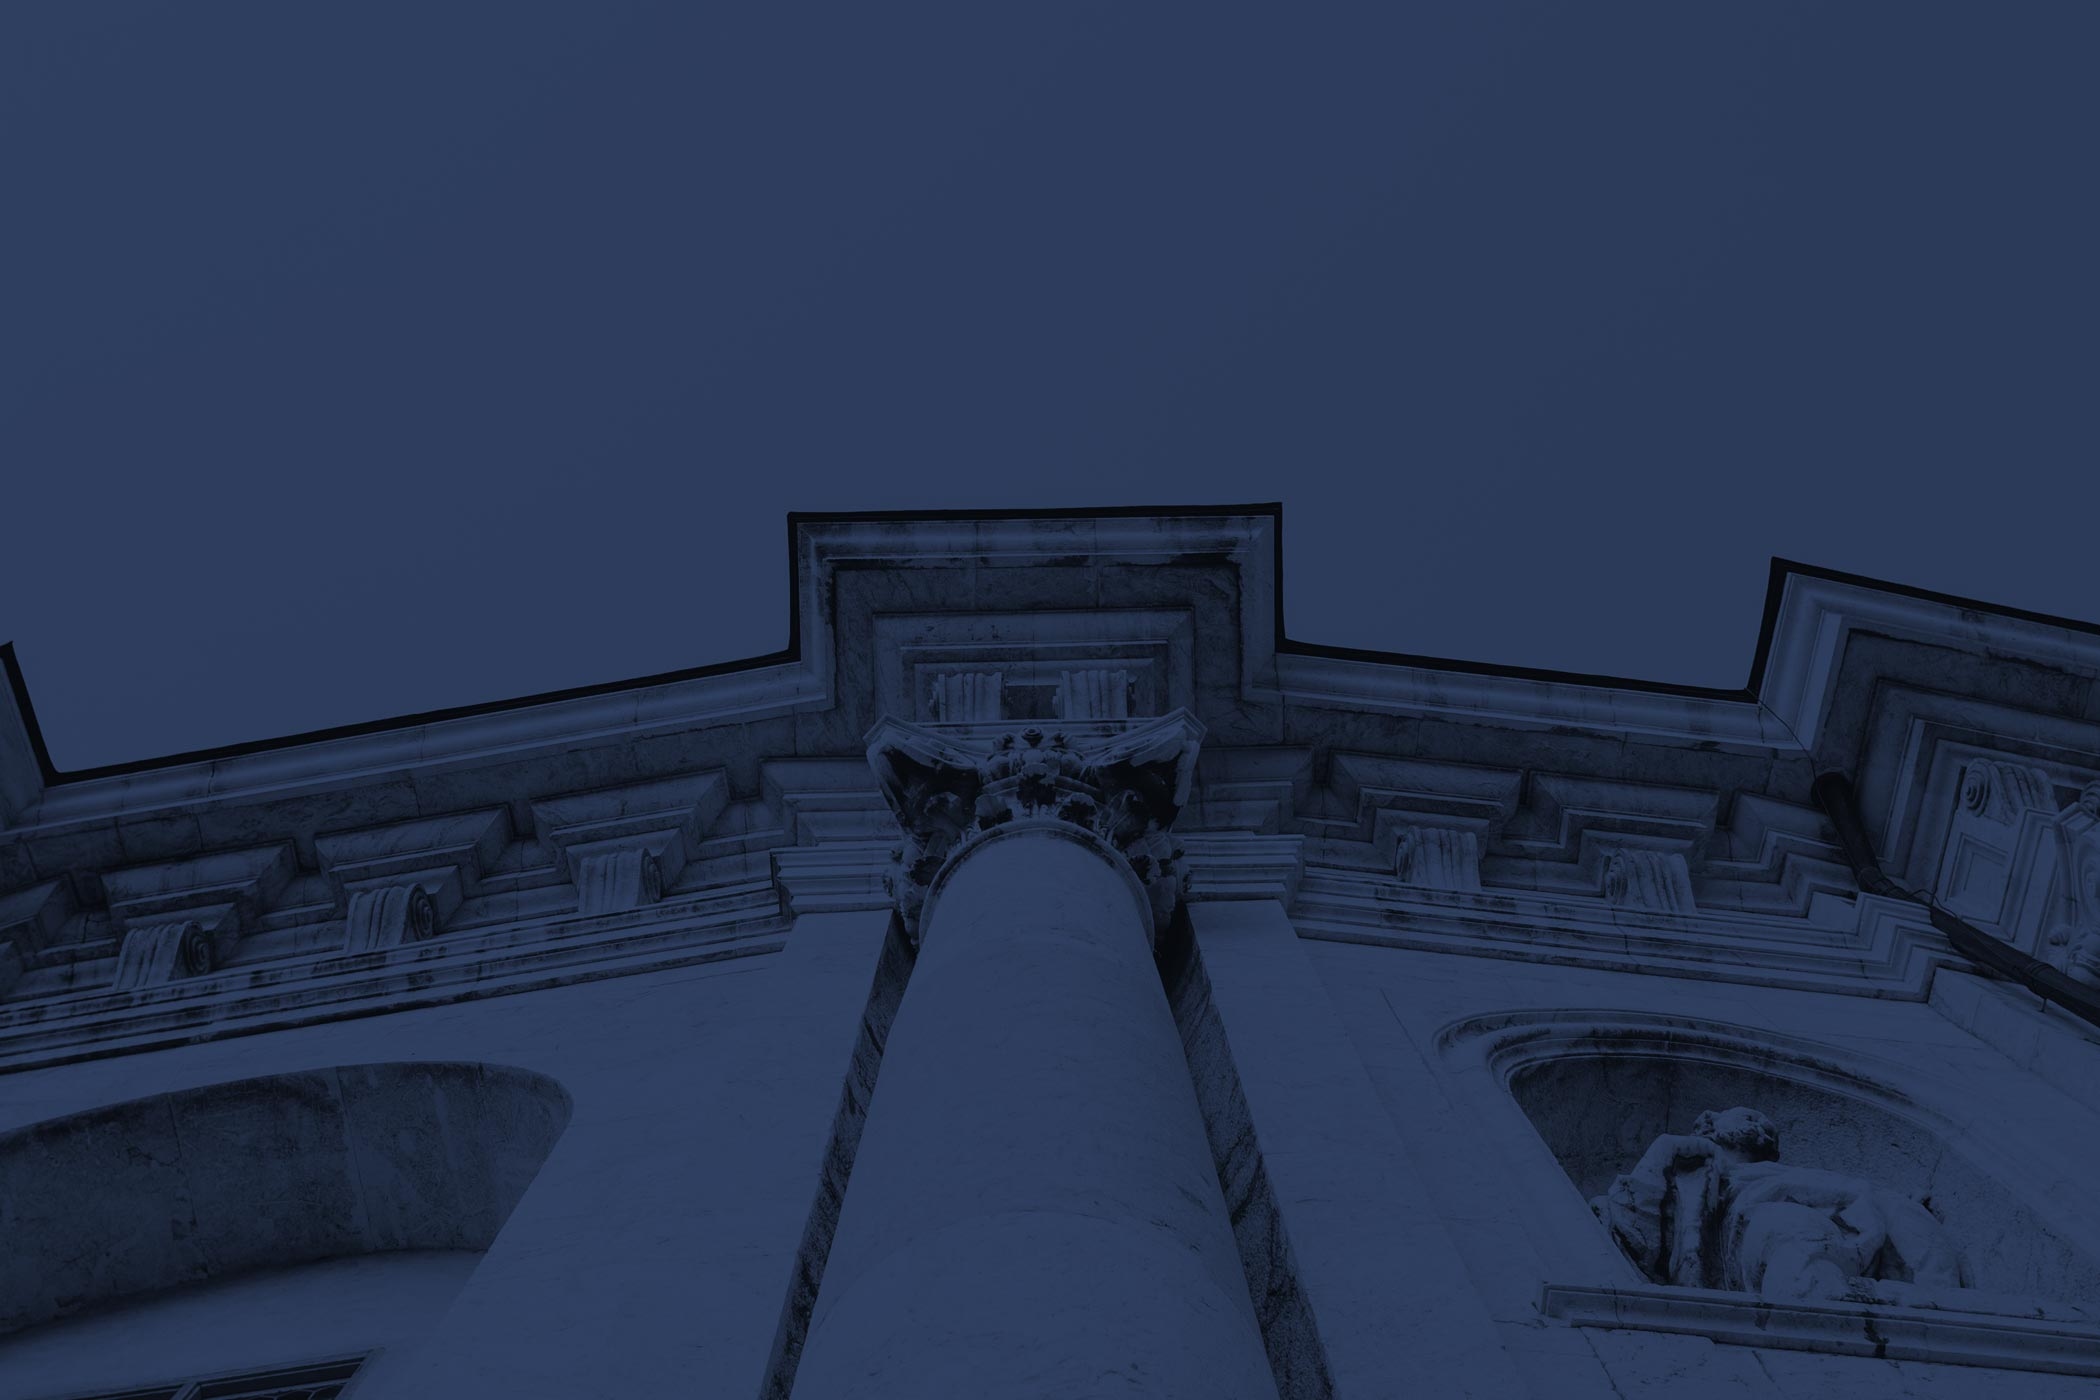 Upward view of what appears to be a courthouse